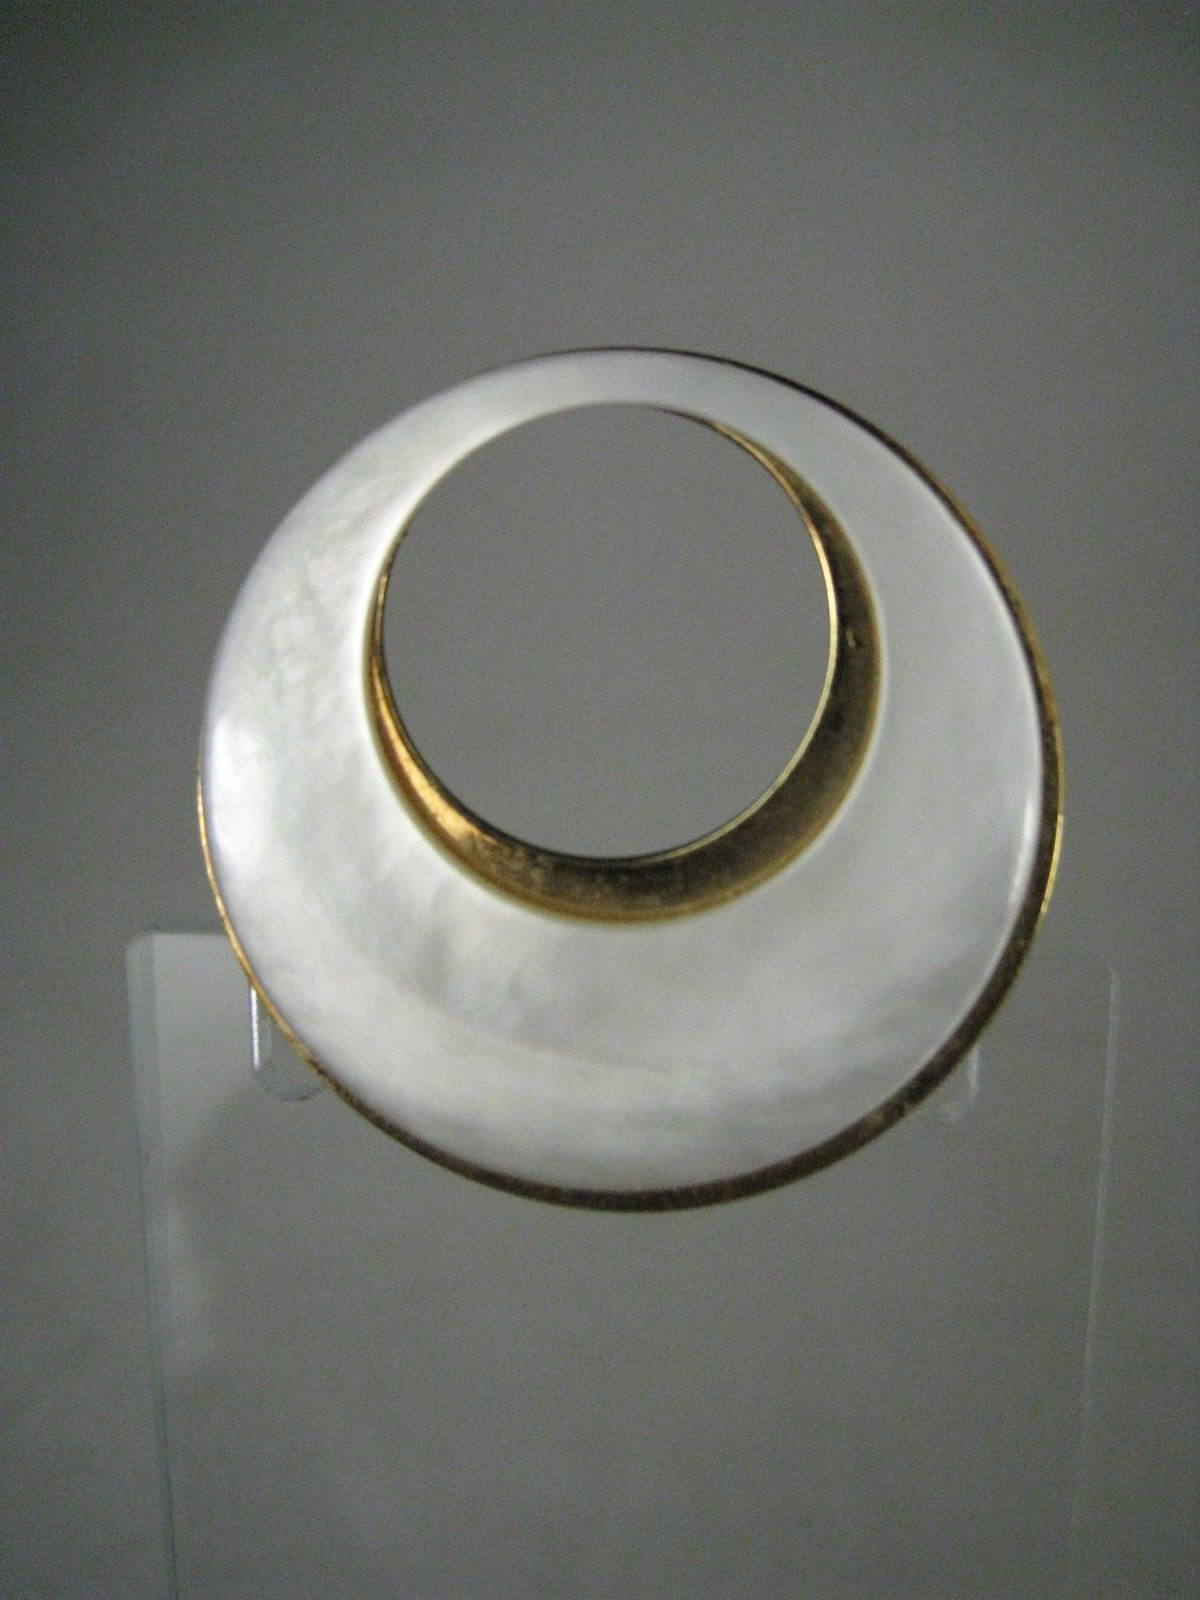 Brooch Goldtone Modern Design Germany Size 1.5 Inches Fashion Circle White